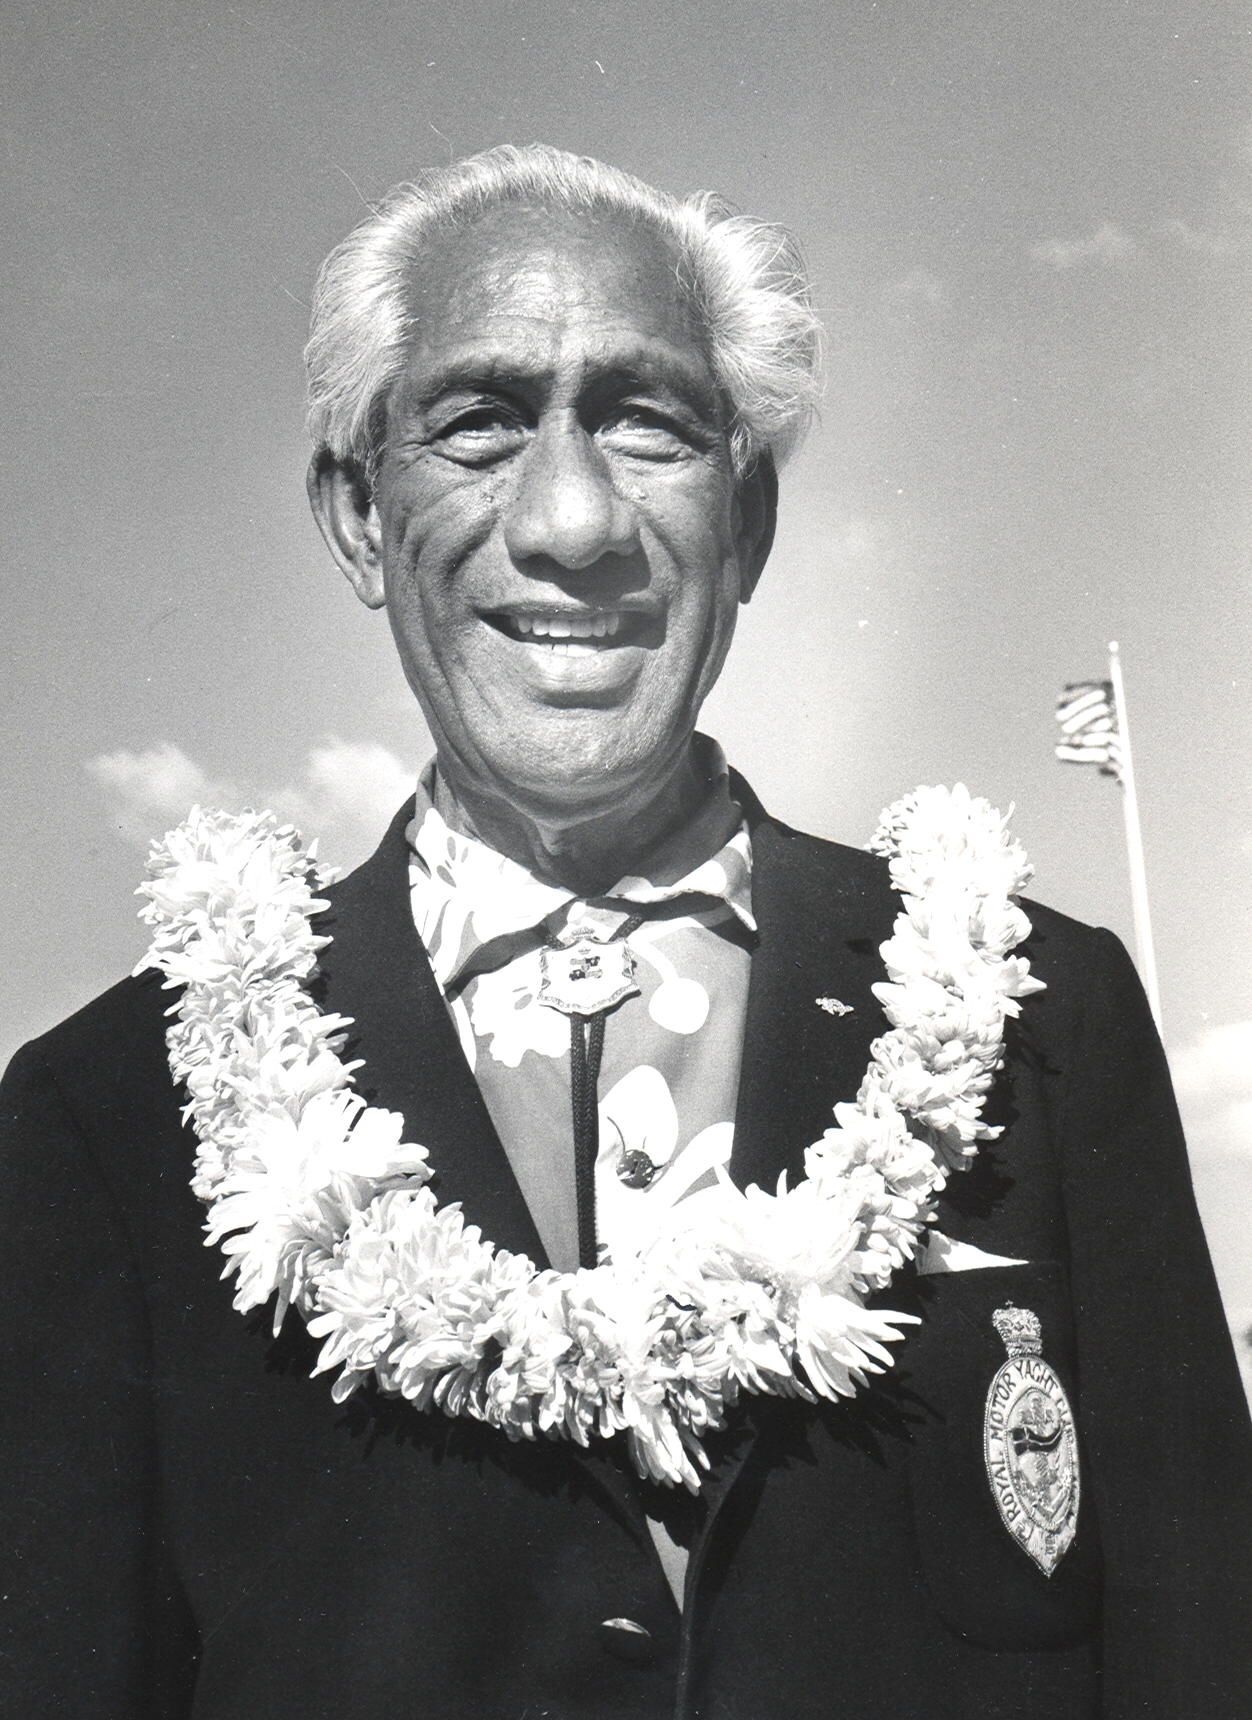 #dukekahanamoku #lei #hawaii #surfing #flowers